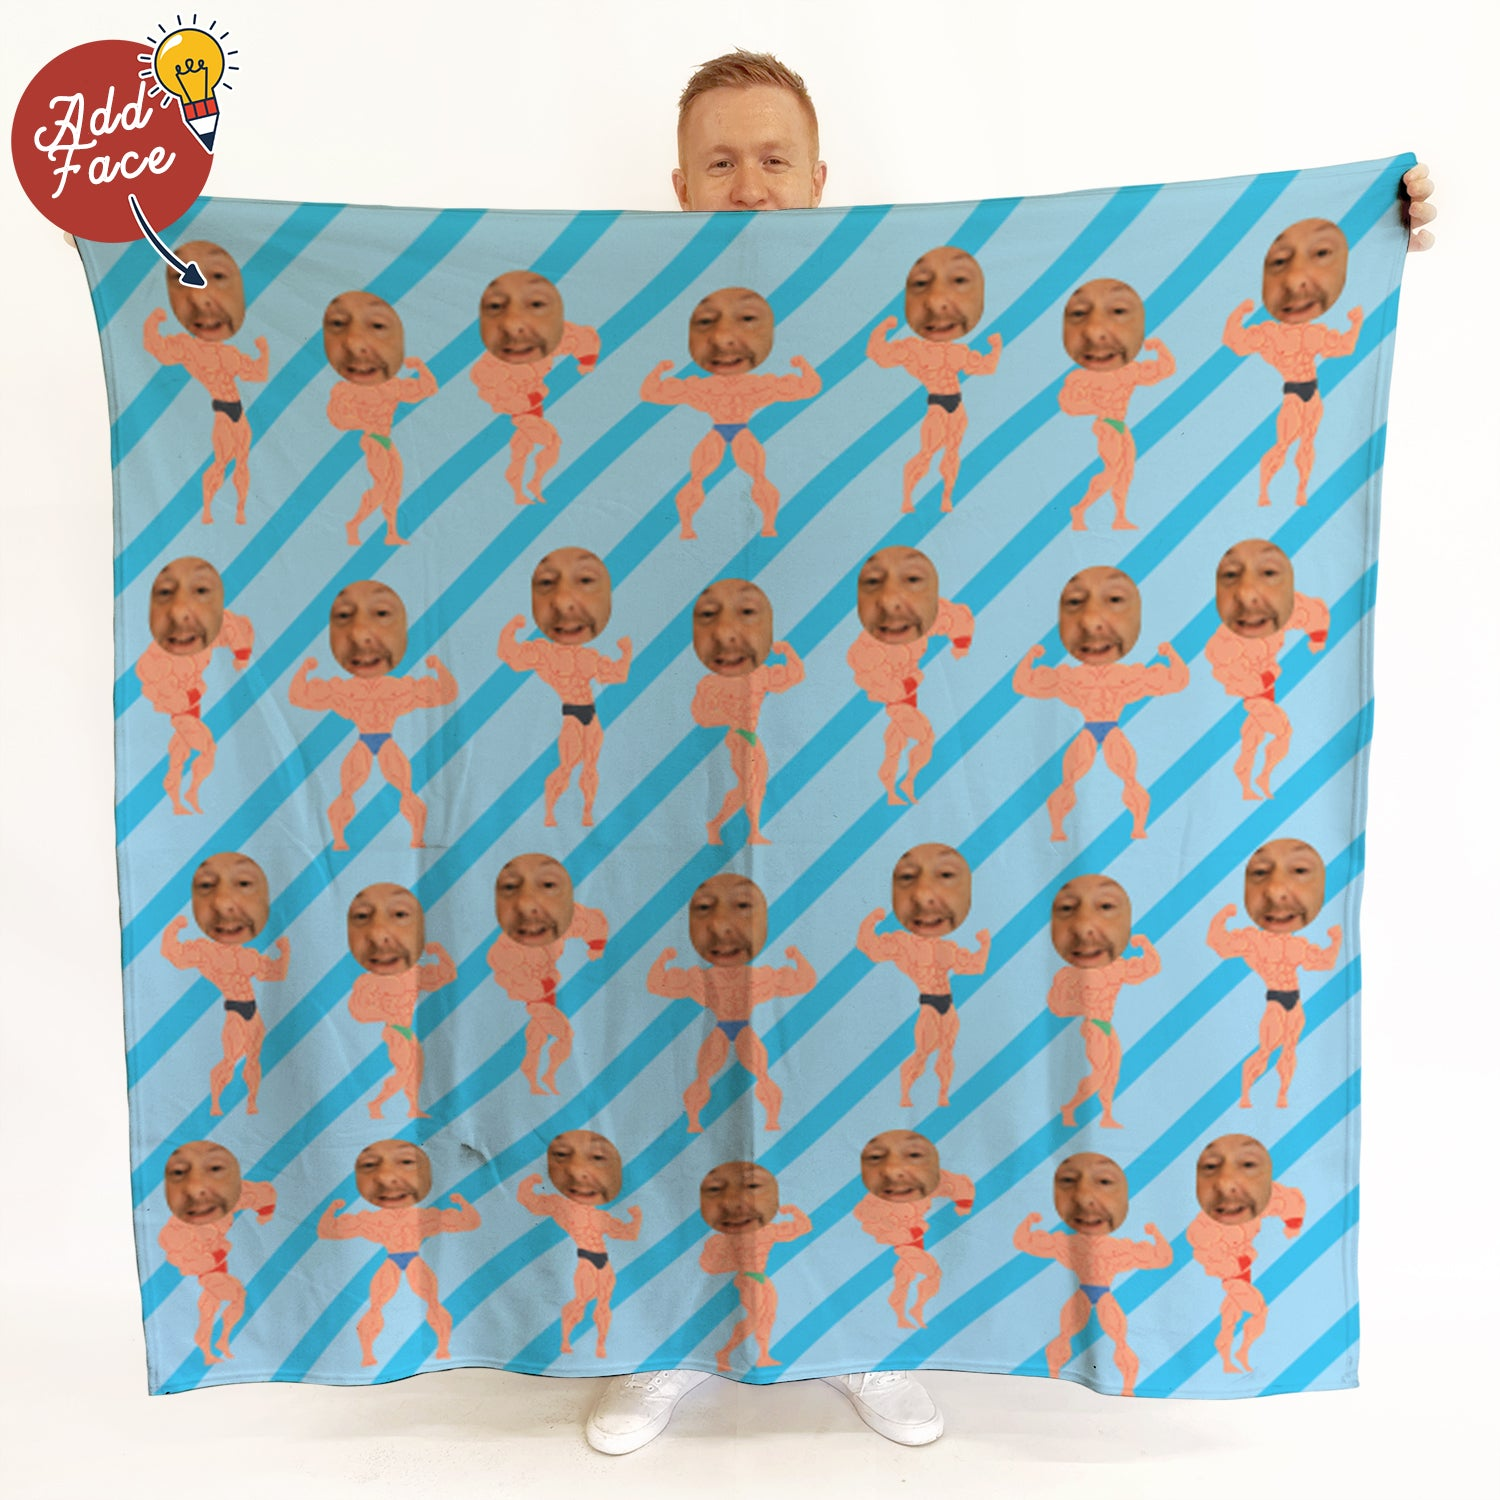 Muscle Man - Face Character Blanket